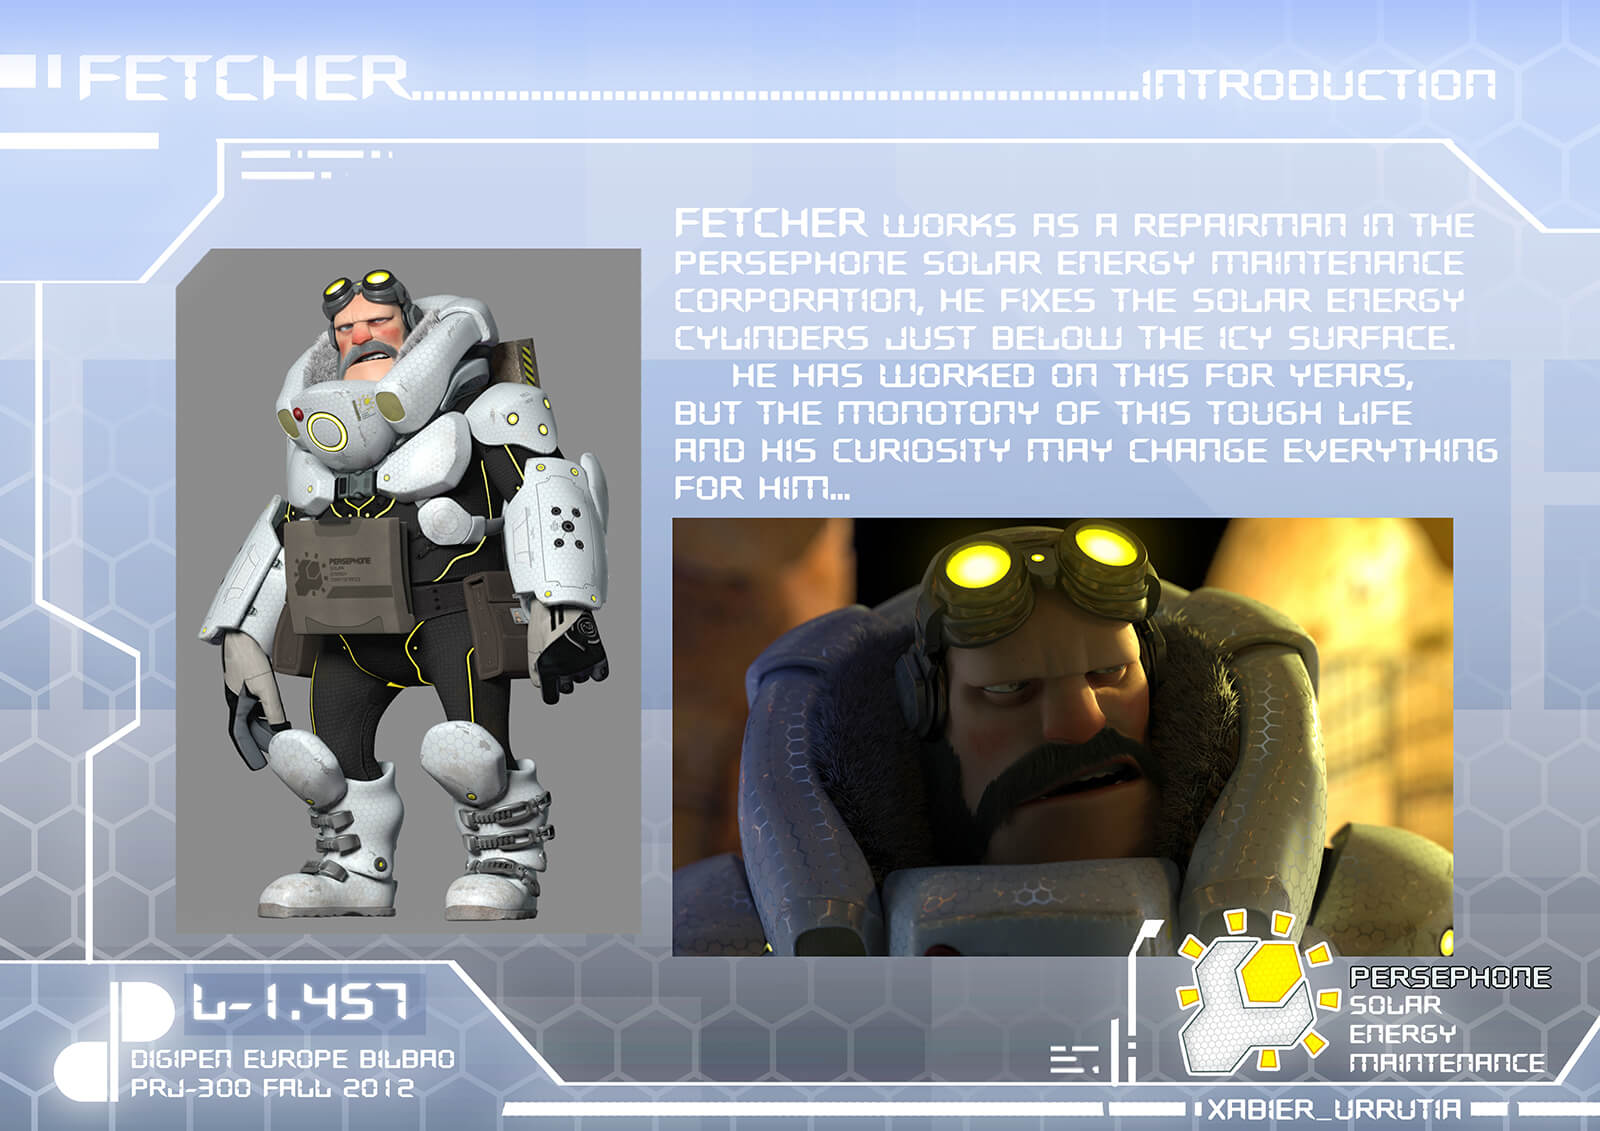 Character and story introduction slide from the film Level 1457 of Fetcher, a bearded man in white and black futuristic armor